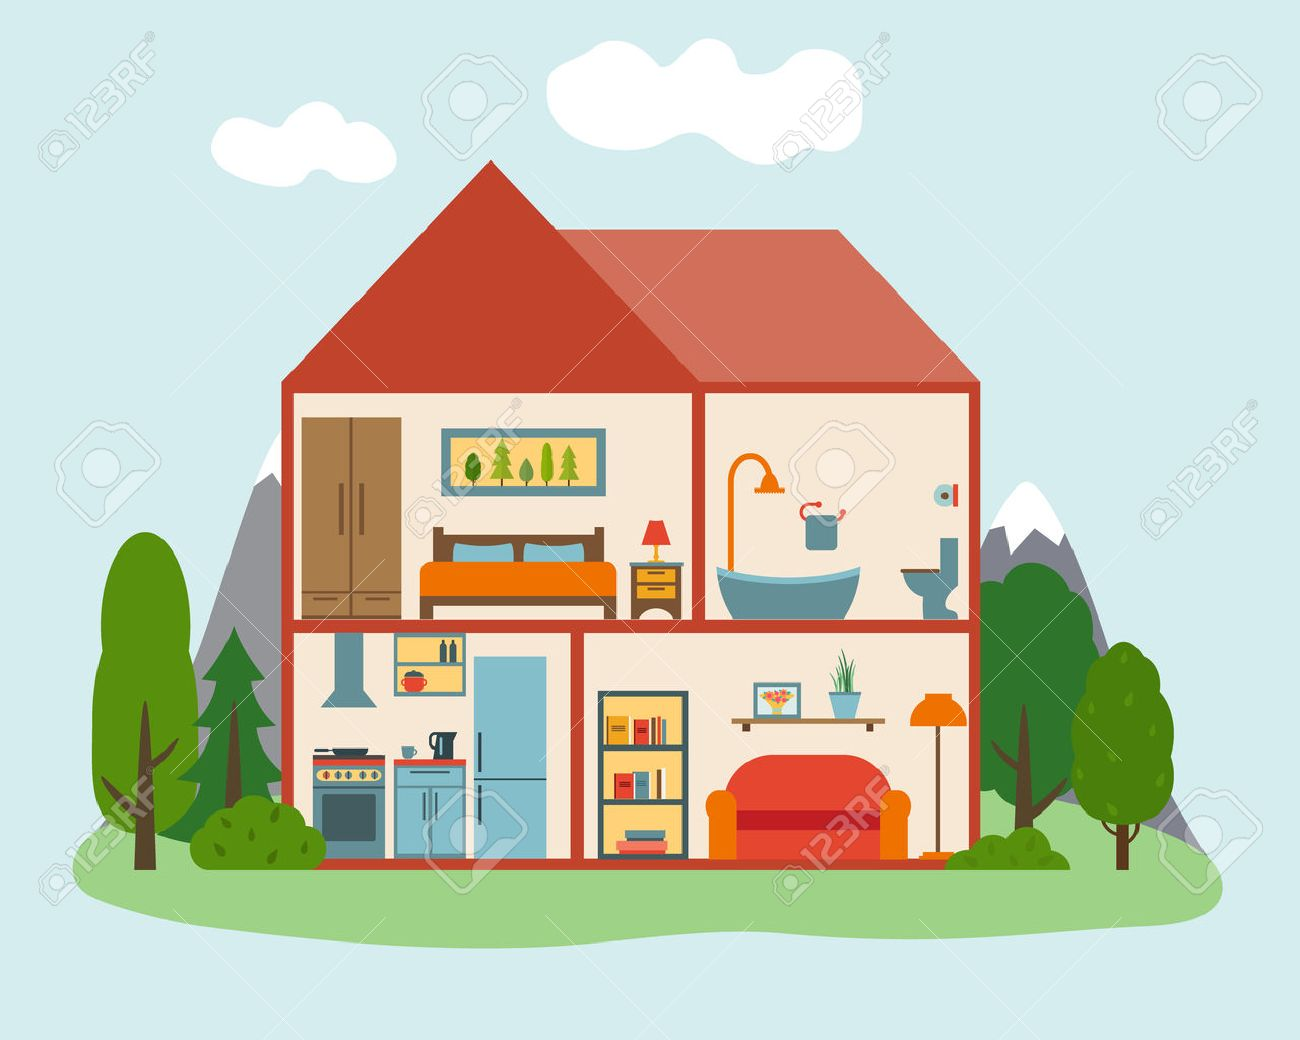 House in cut. Detailed modern house interior. Rooms with furniture. Flat style vector illustration. - 42448584